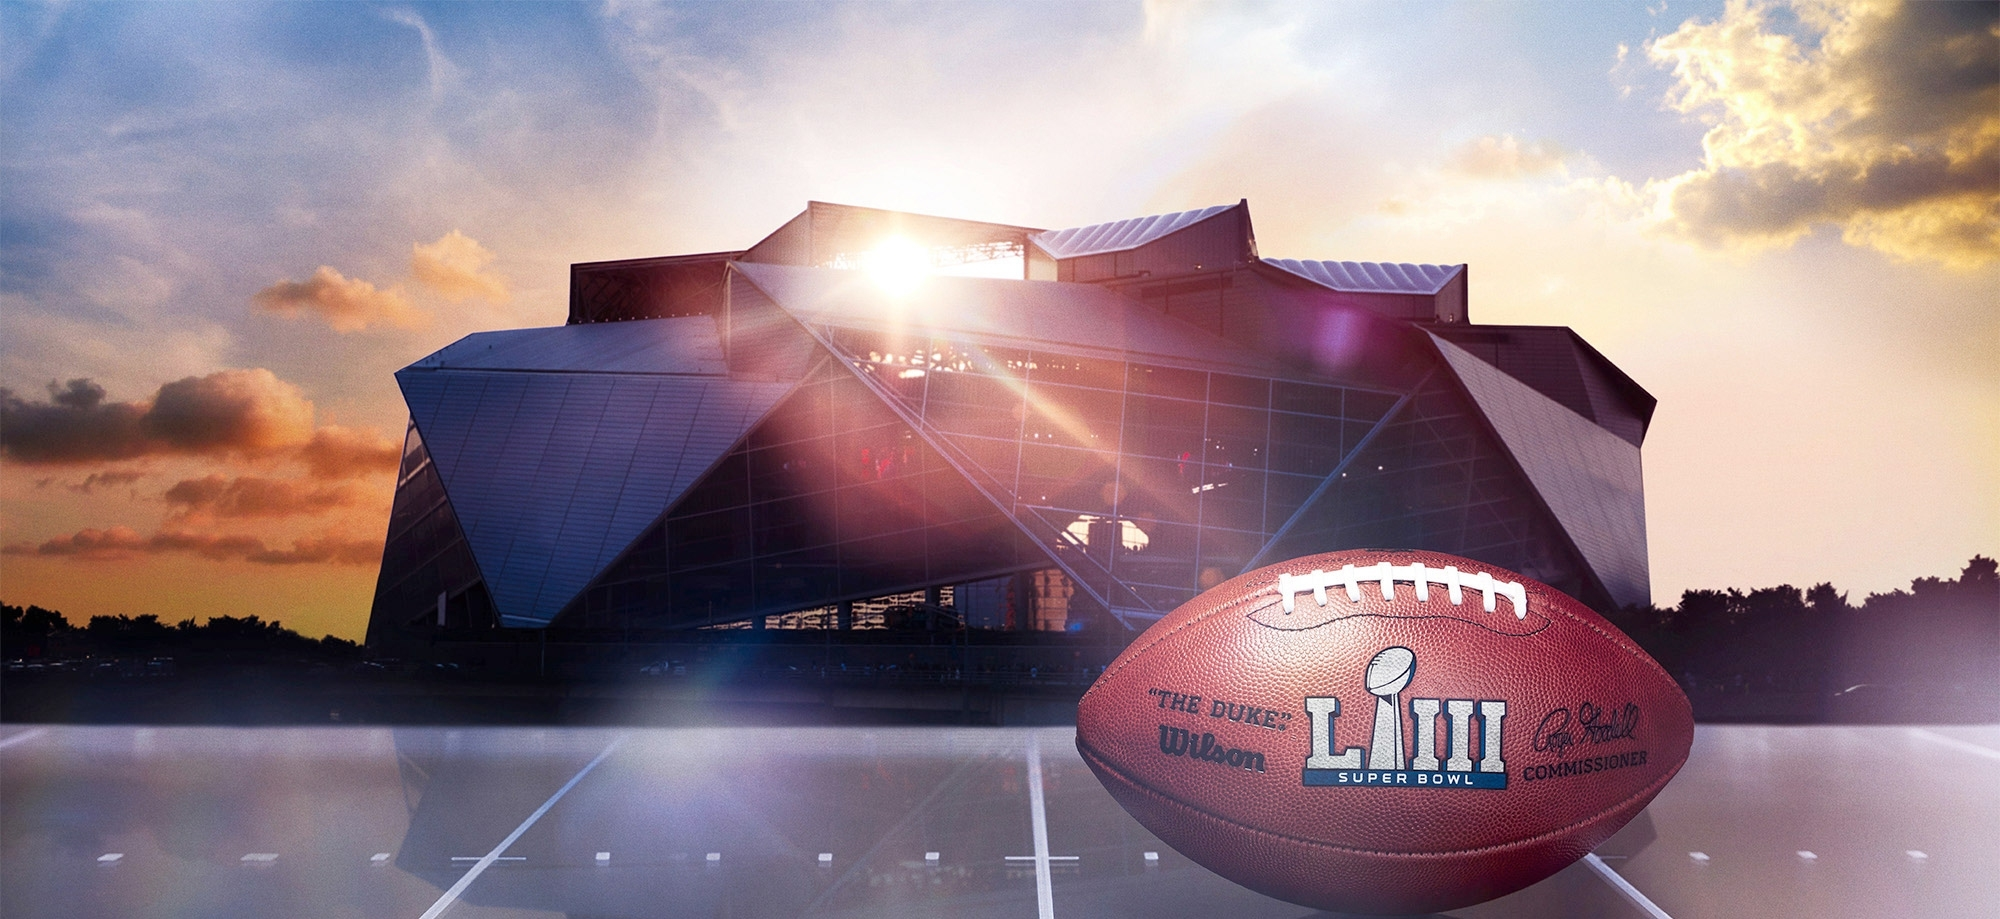 2019-Atlanta-Super-Bowl-Tickets - On Location Experiences pertaining to Super Bowl 2019 Tickets